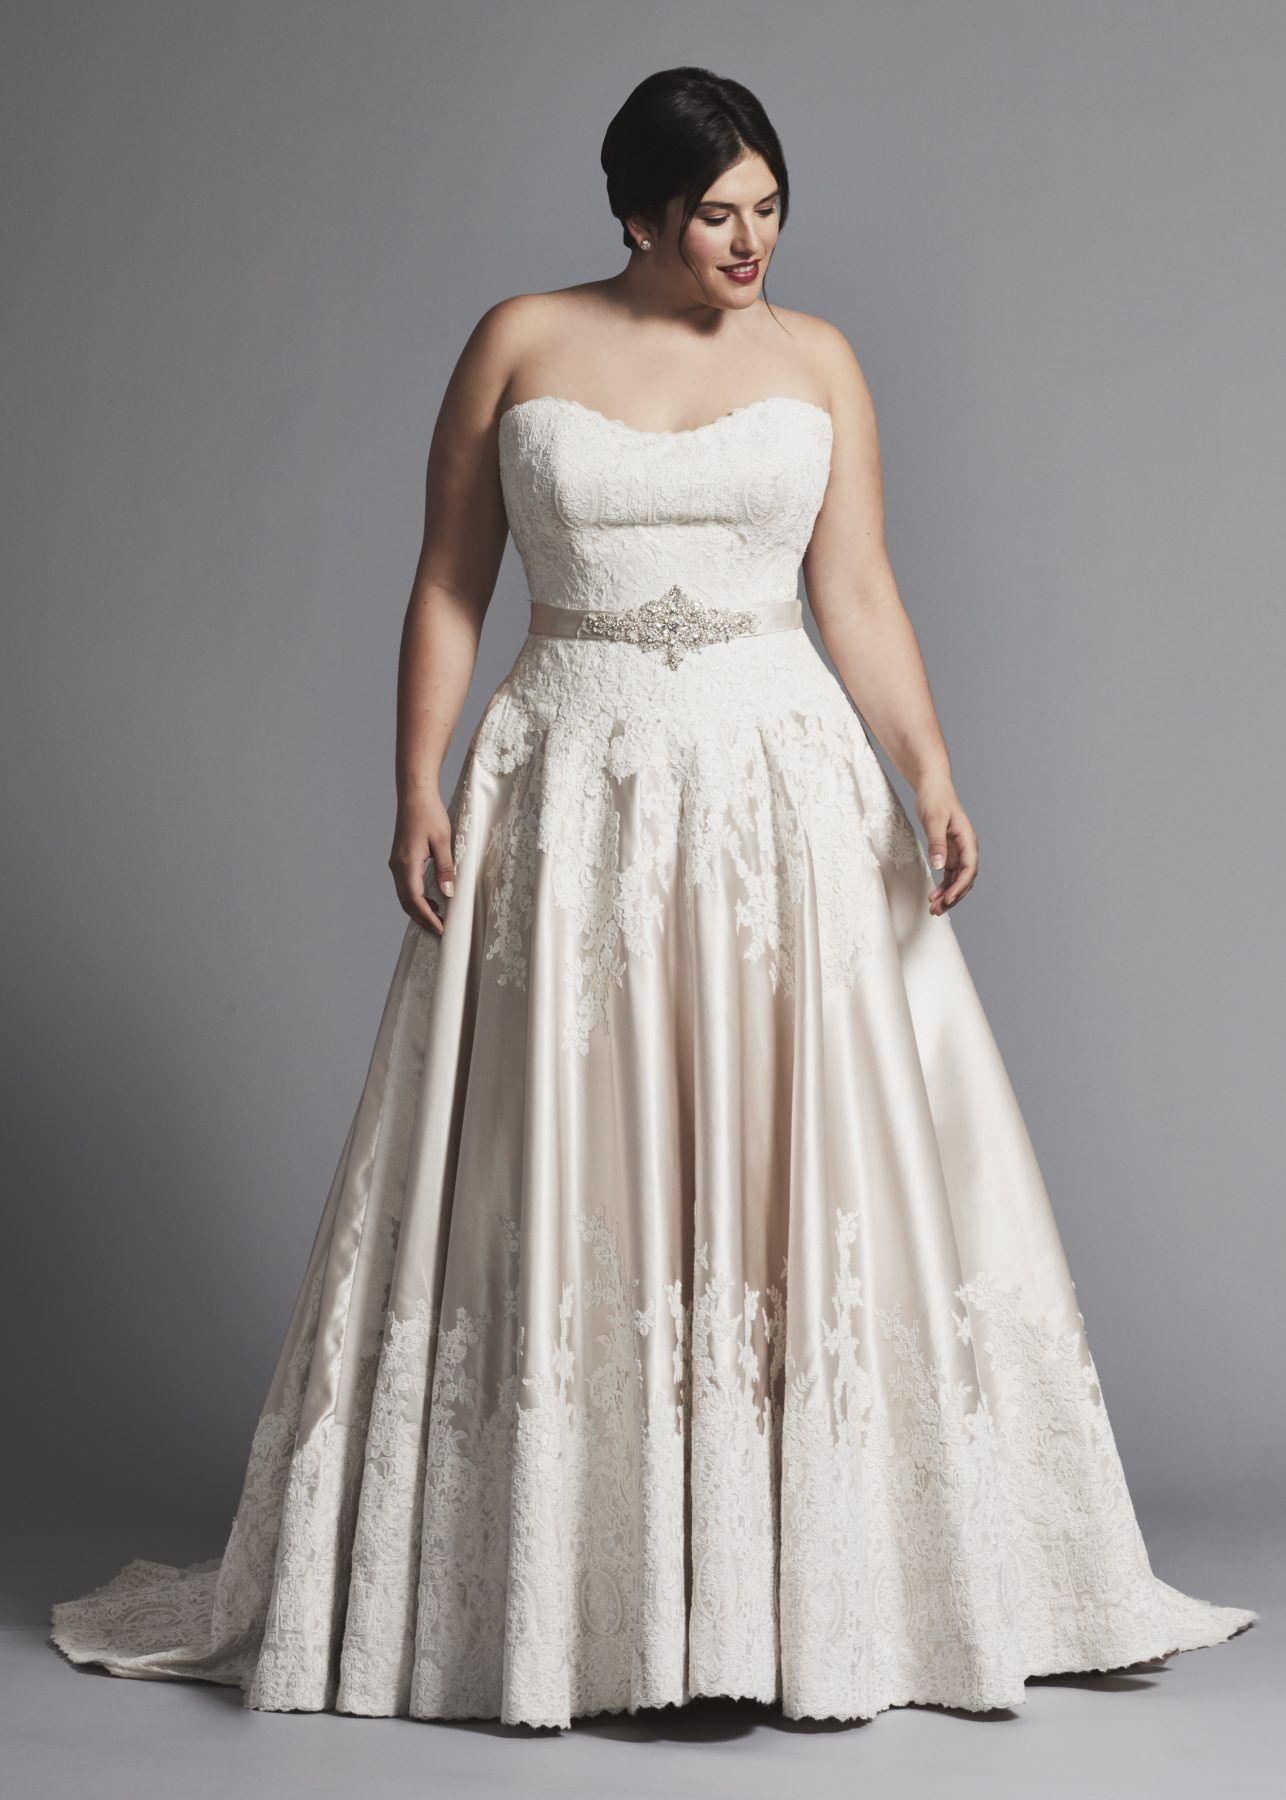 f237b9a070d Dresses on Kleinfeld Bridal. Strapless A-line lace bodice and satin skirt wedding  dress with sweetheart neckline in plus size.